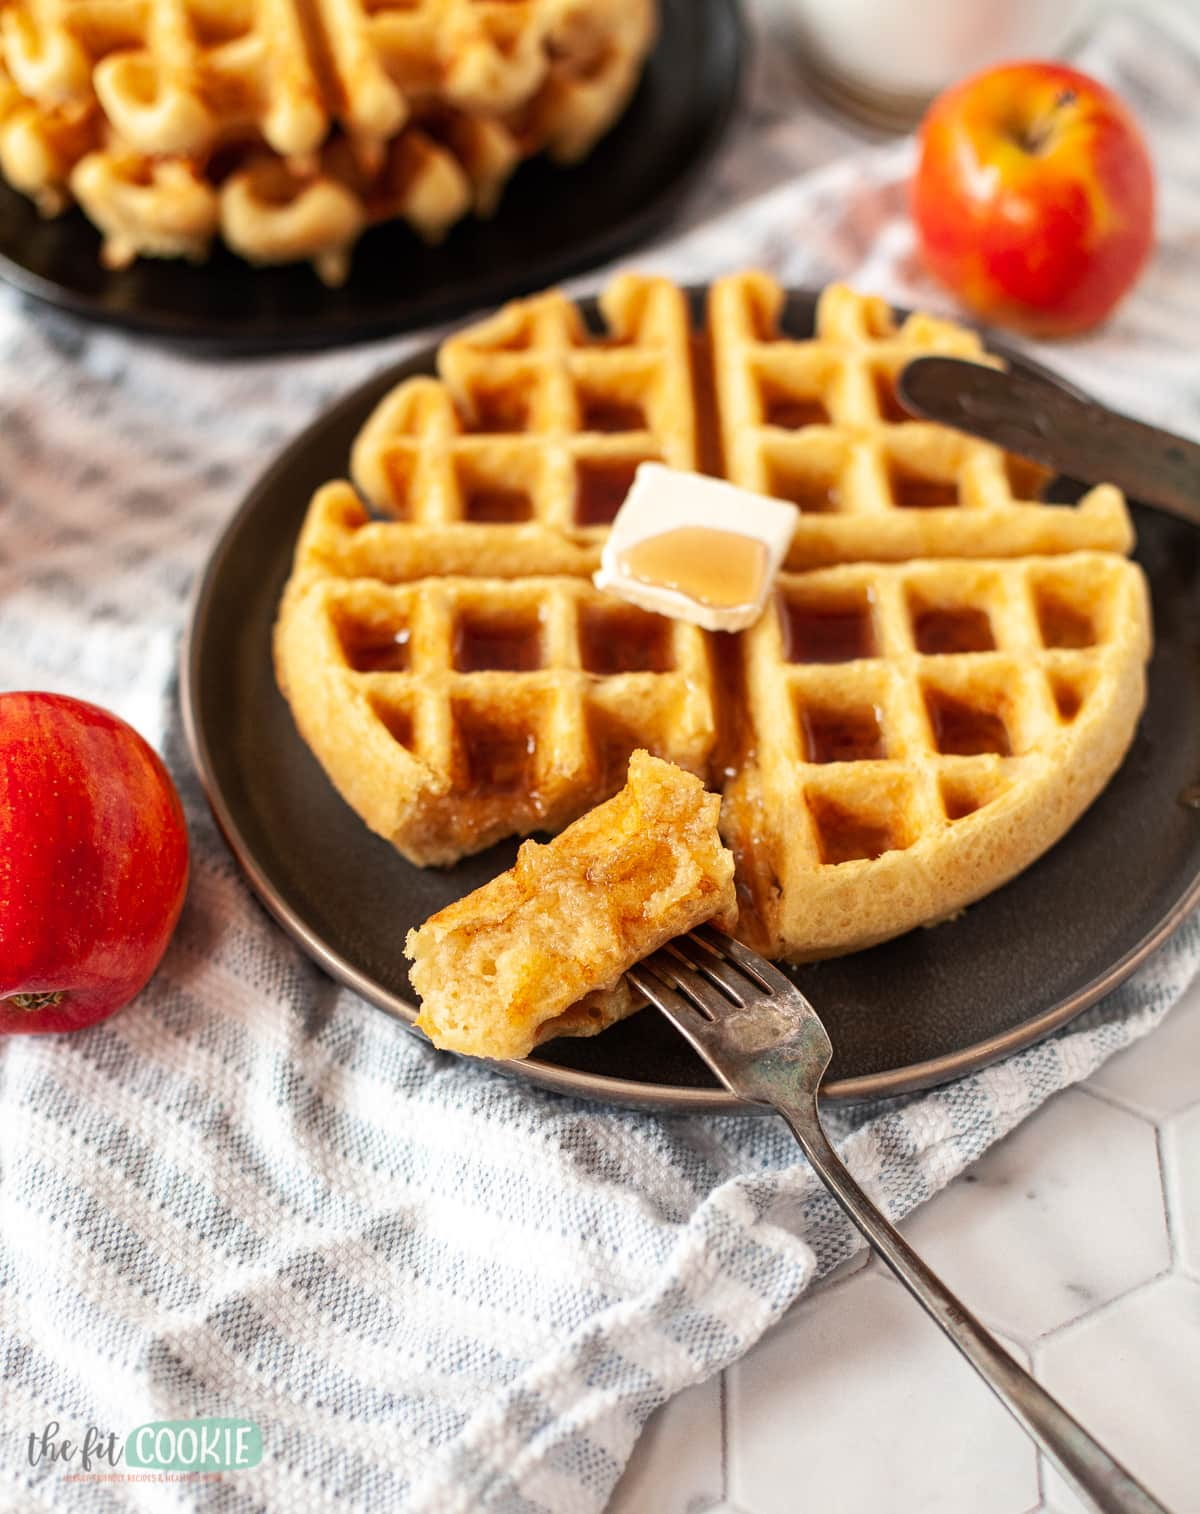 gluten free waffles with a piece on a fork